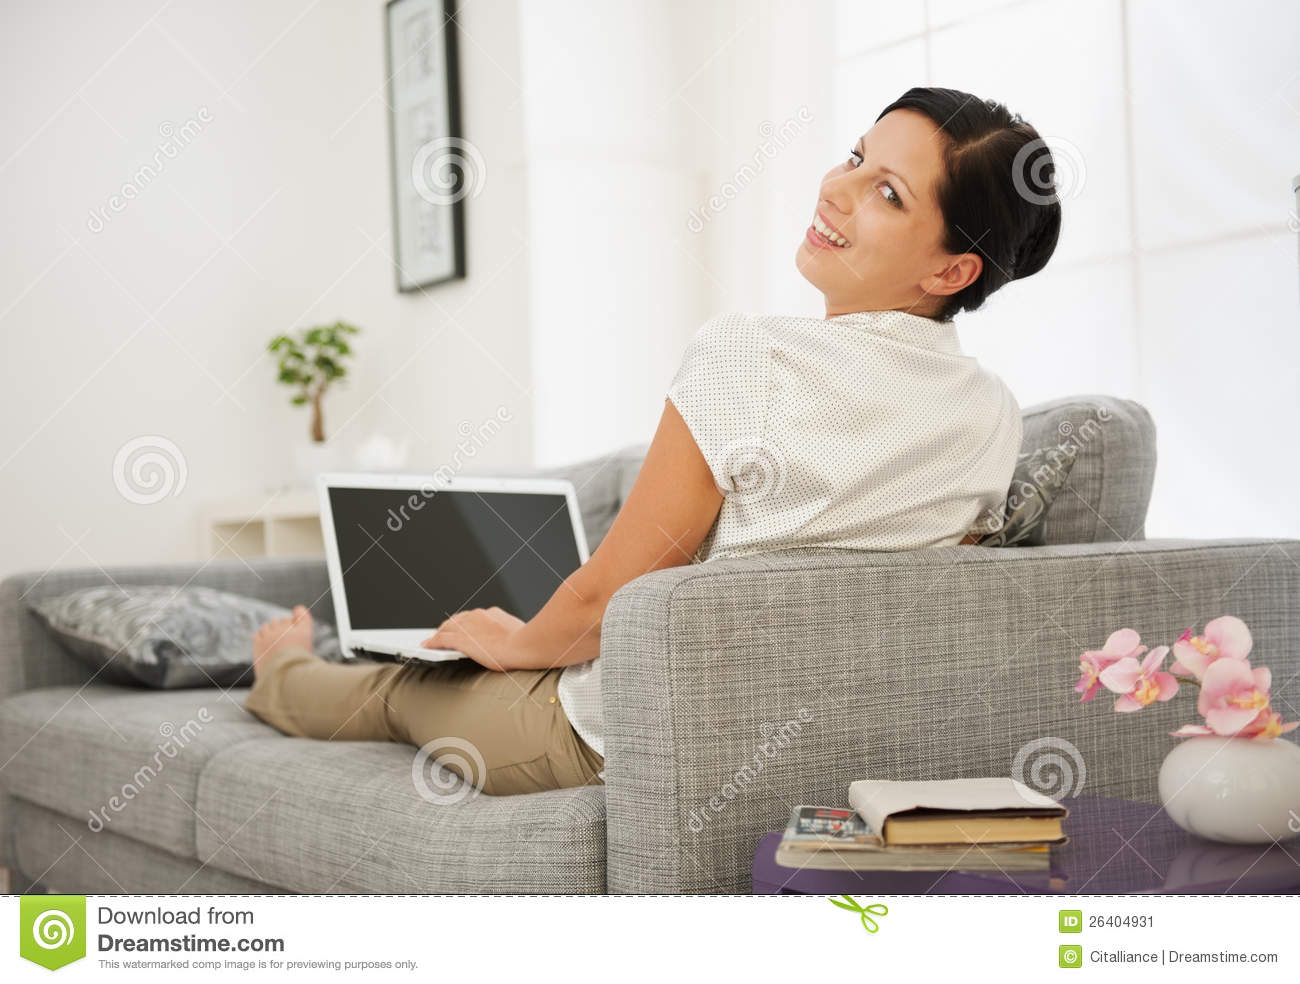 woman sitting on couch and working on laptop stock image. Black Bedroom Furniture Sets. Home Design Ideas